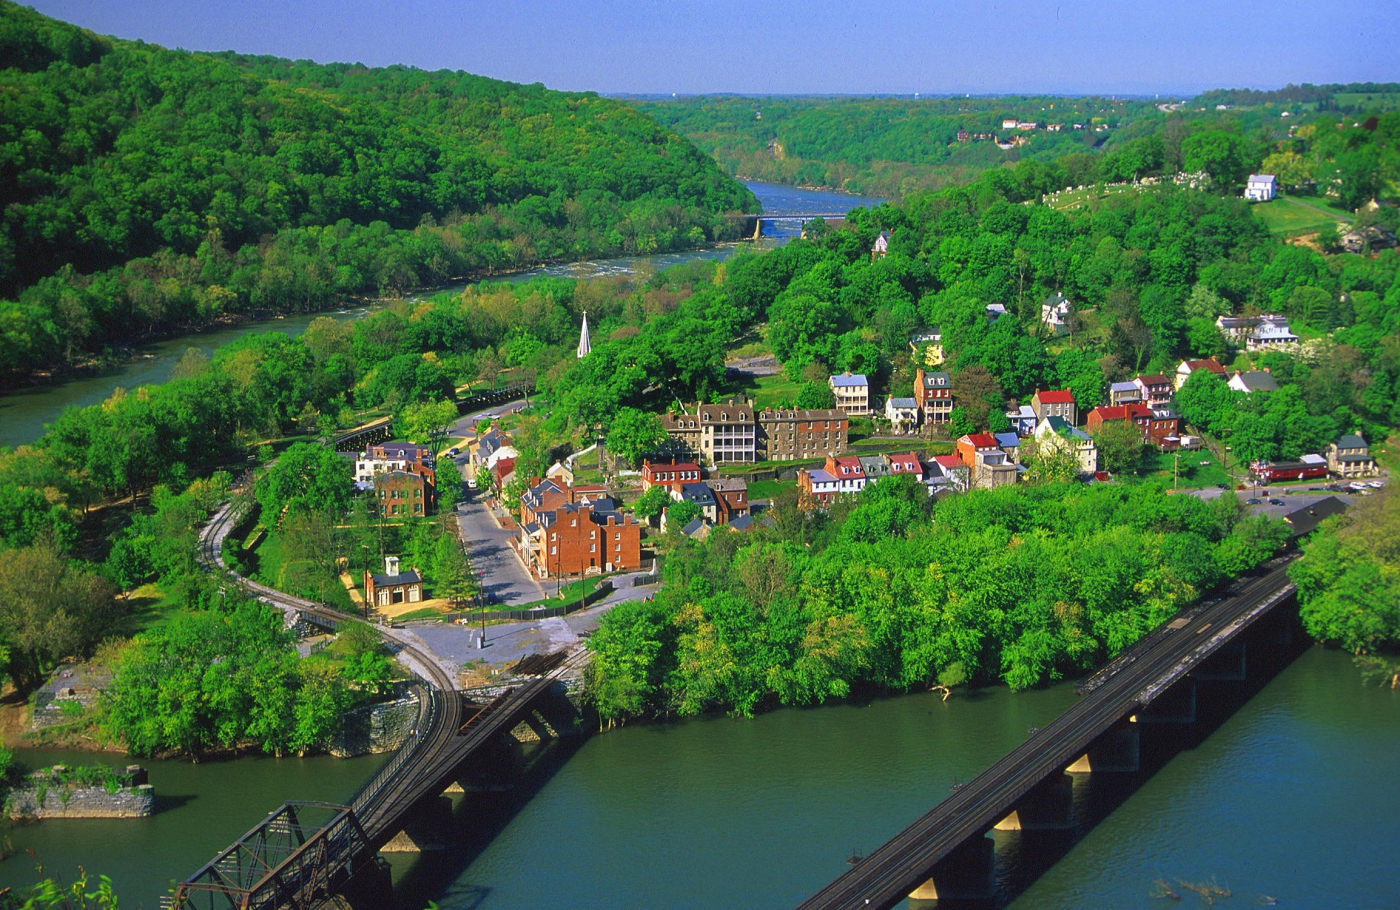 Take a trip back in time and visit historic Harpers Ferry.